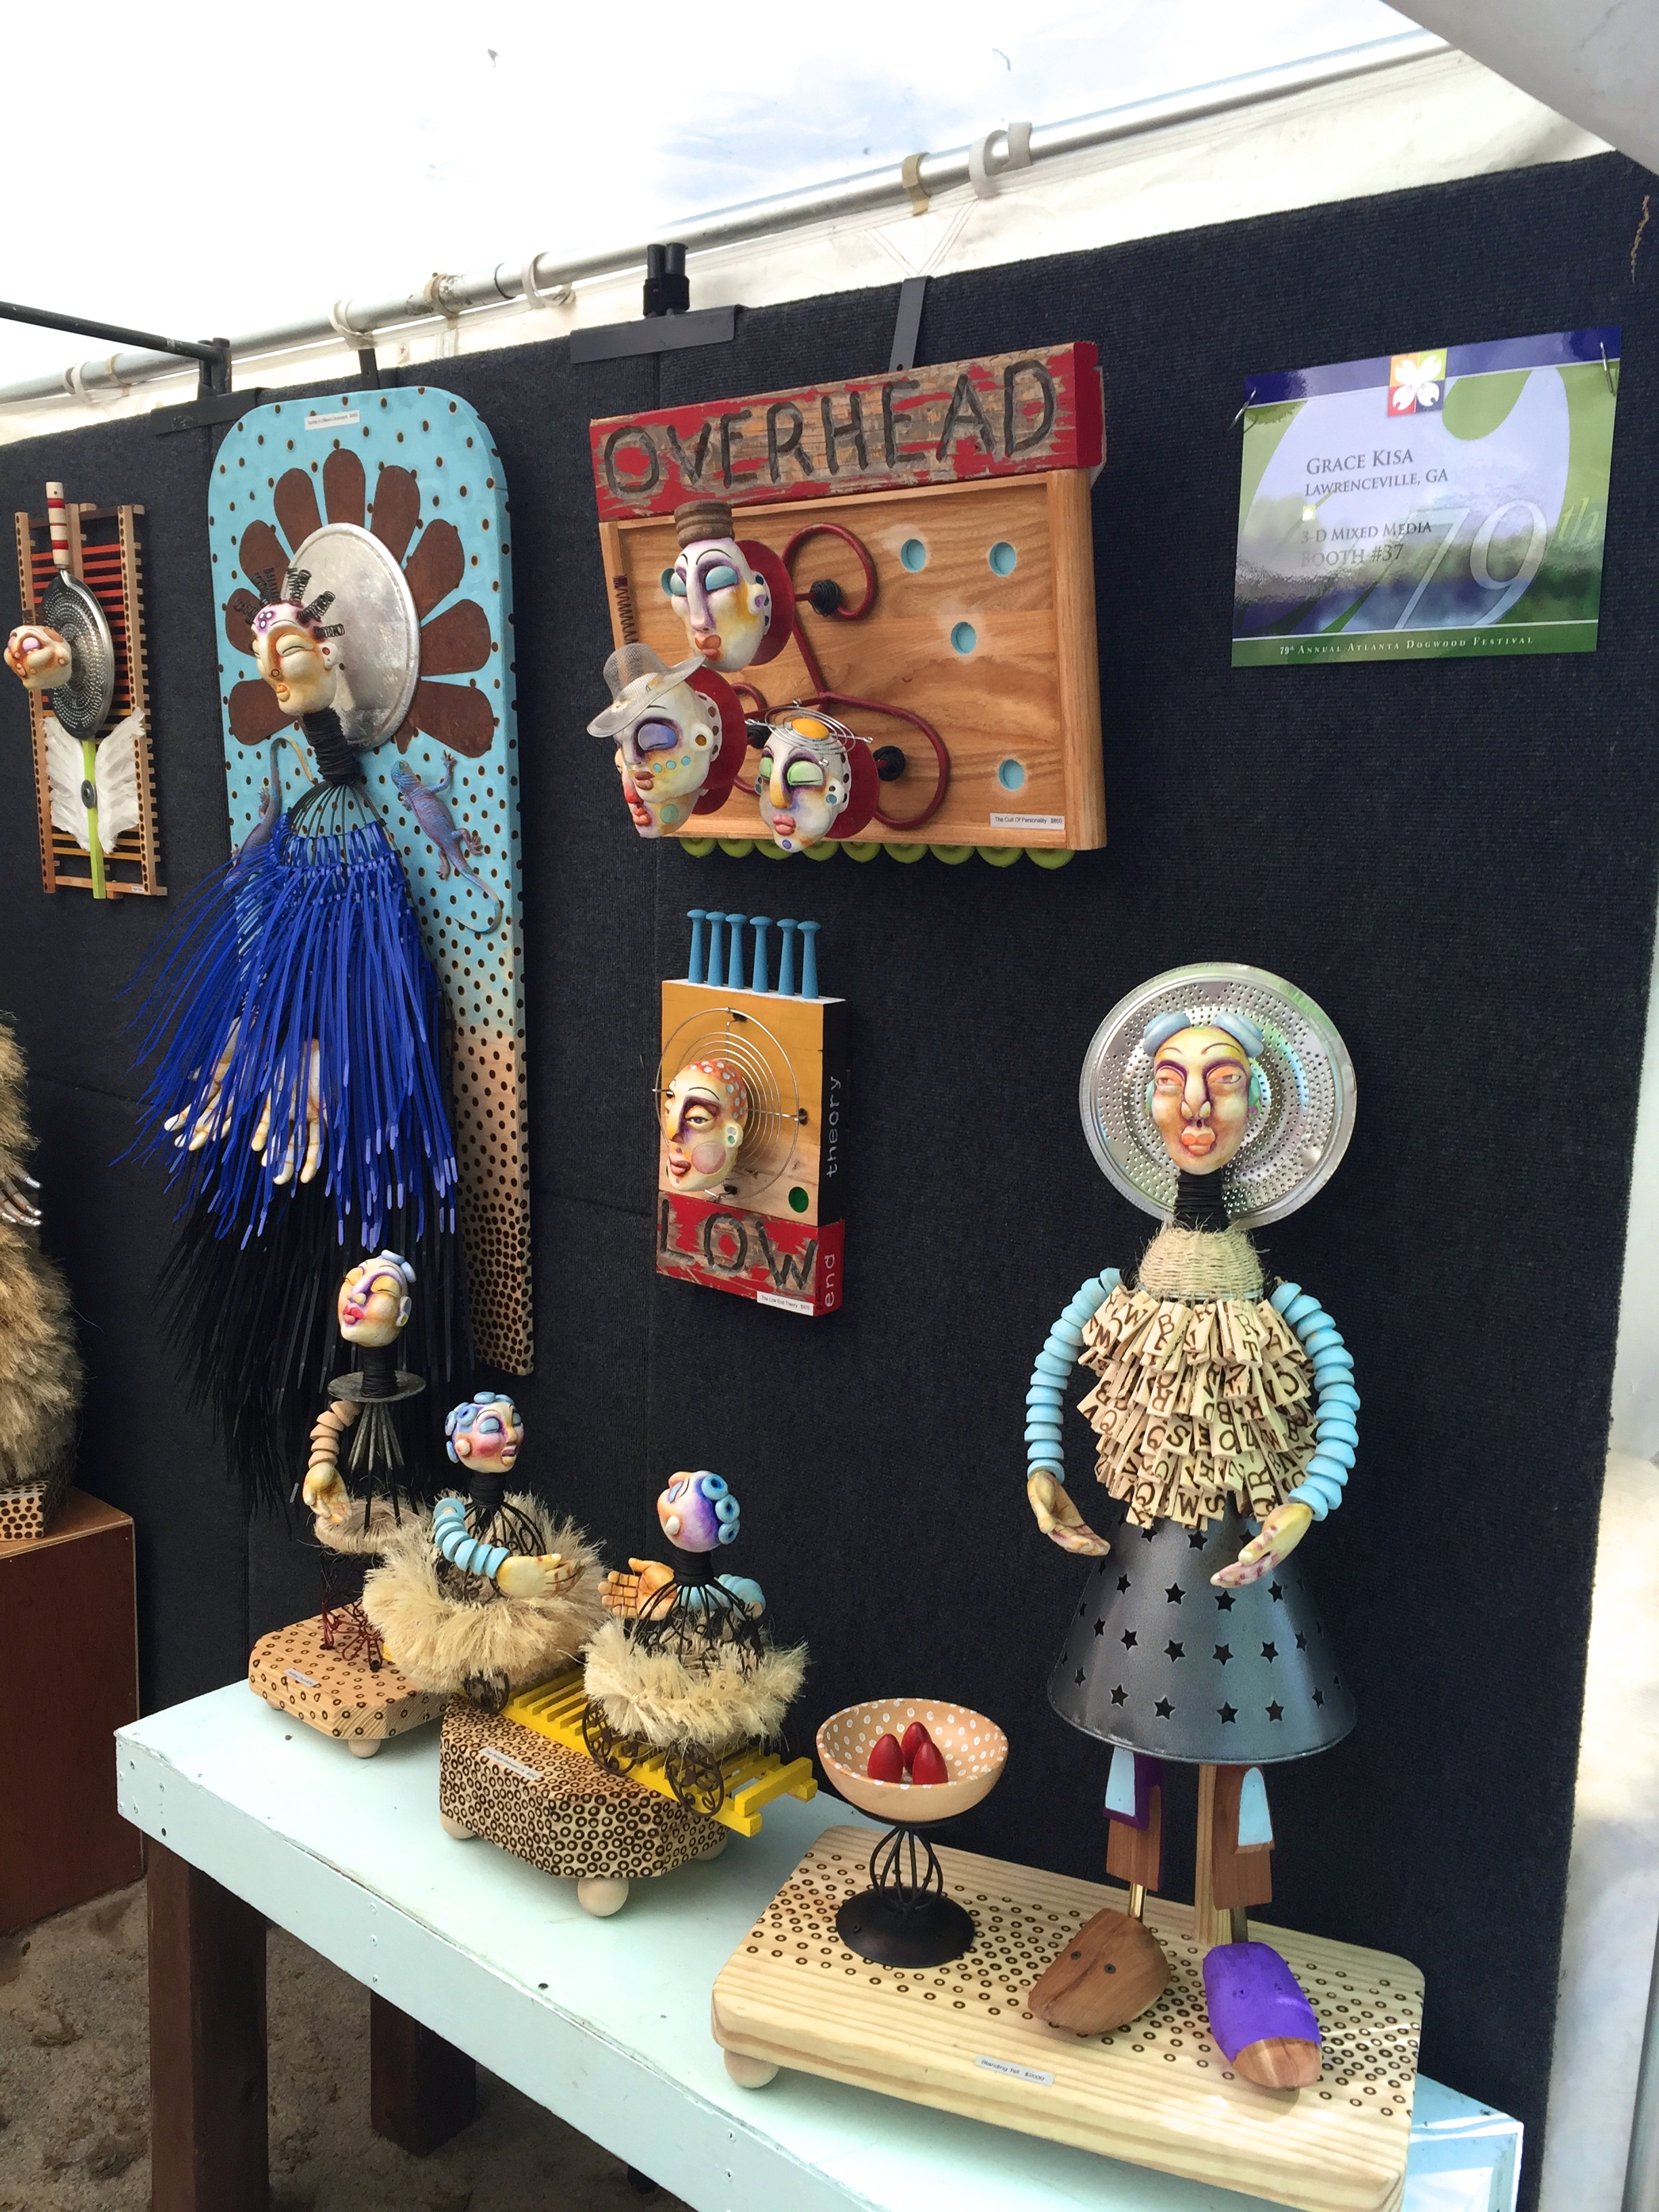 Handmade pottery and clay figures